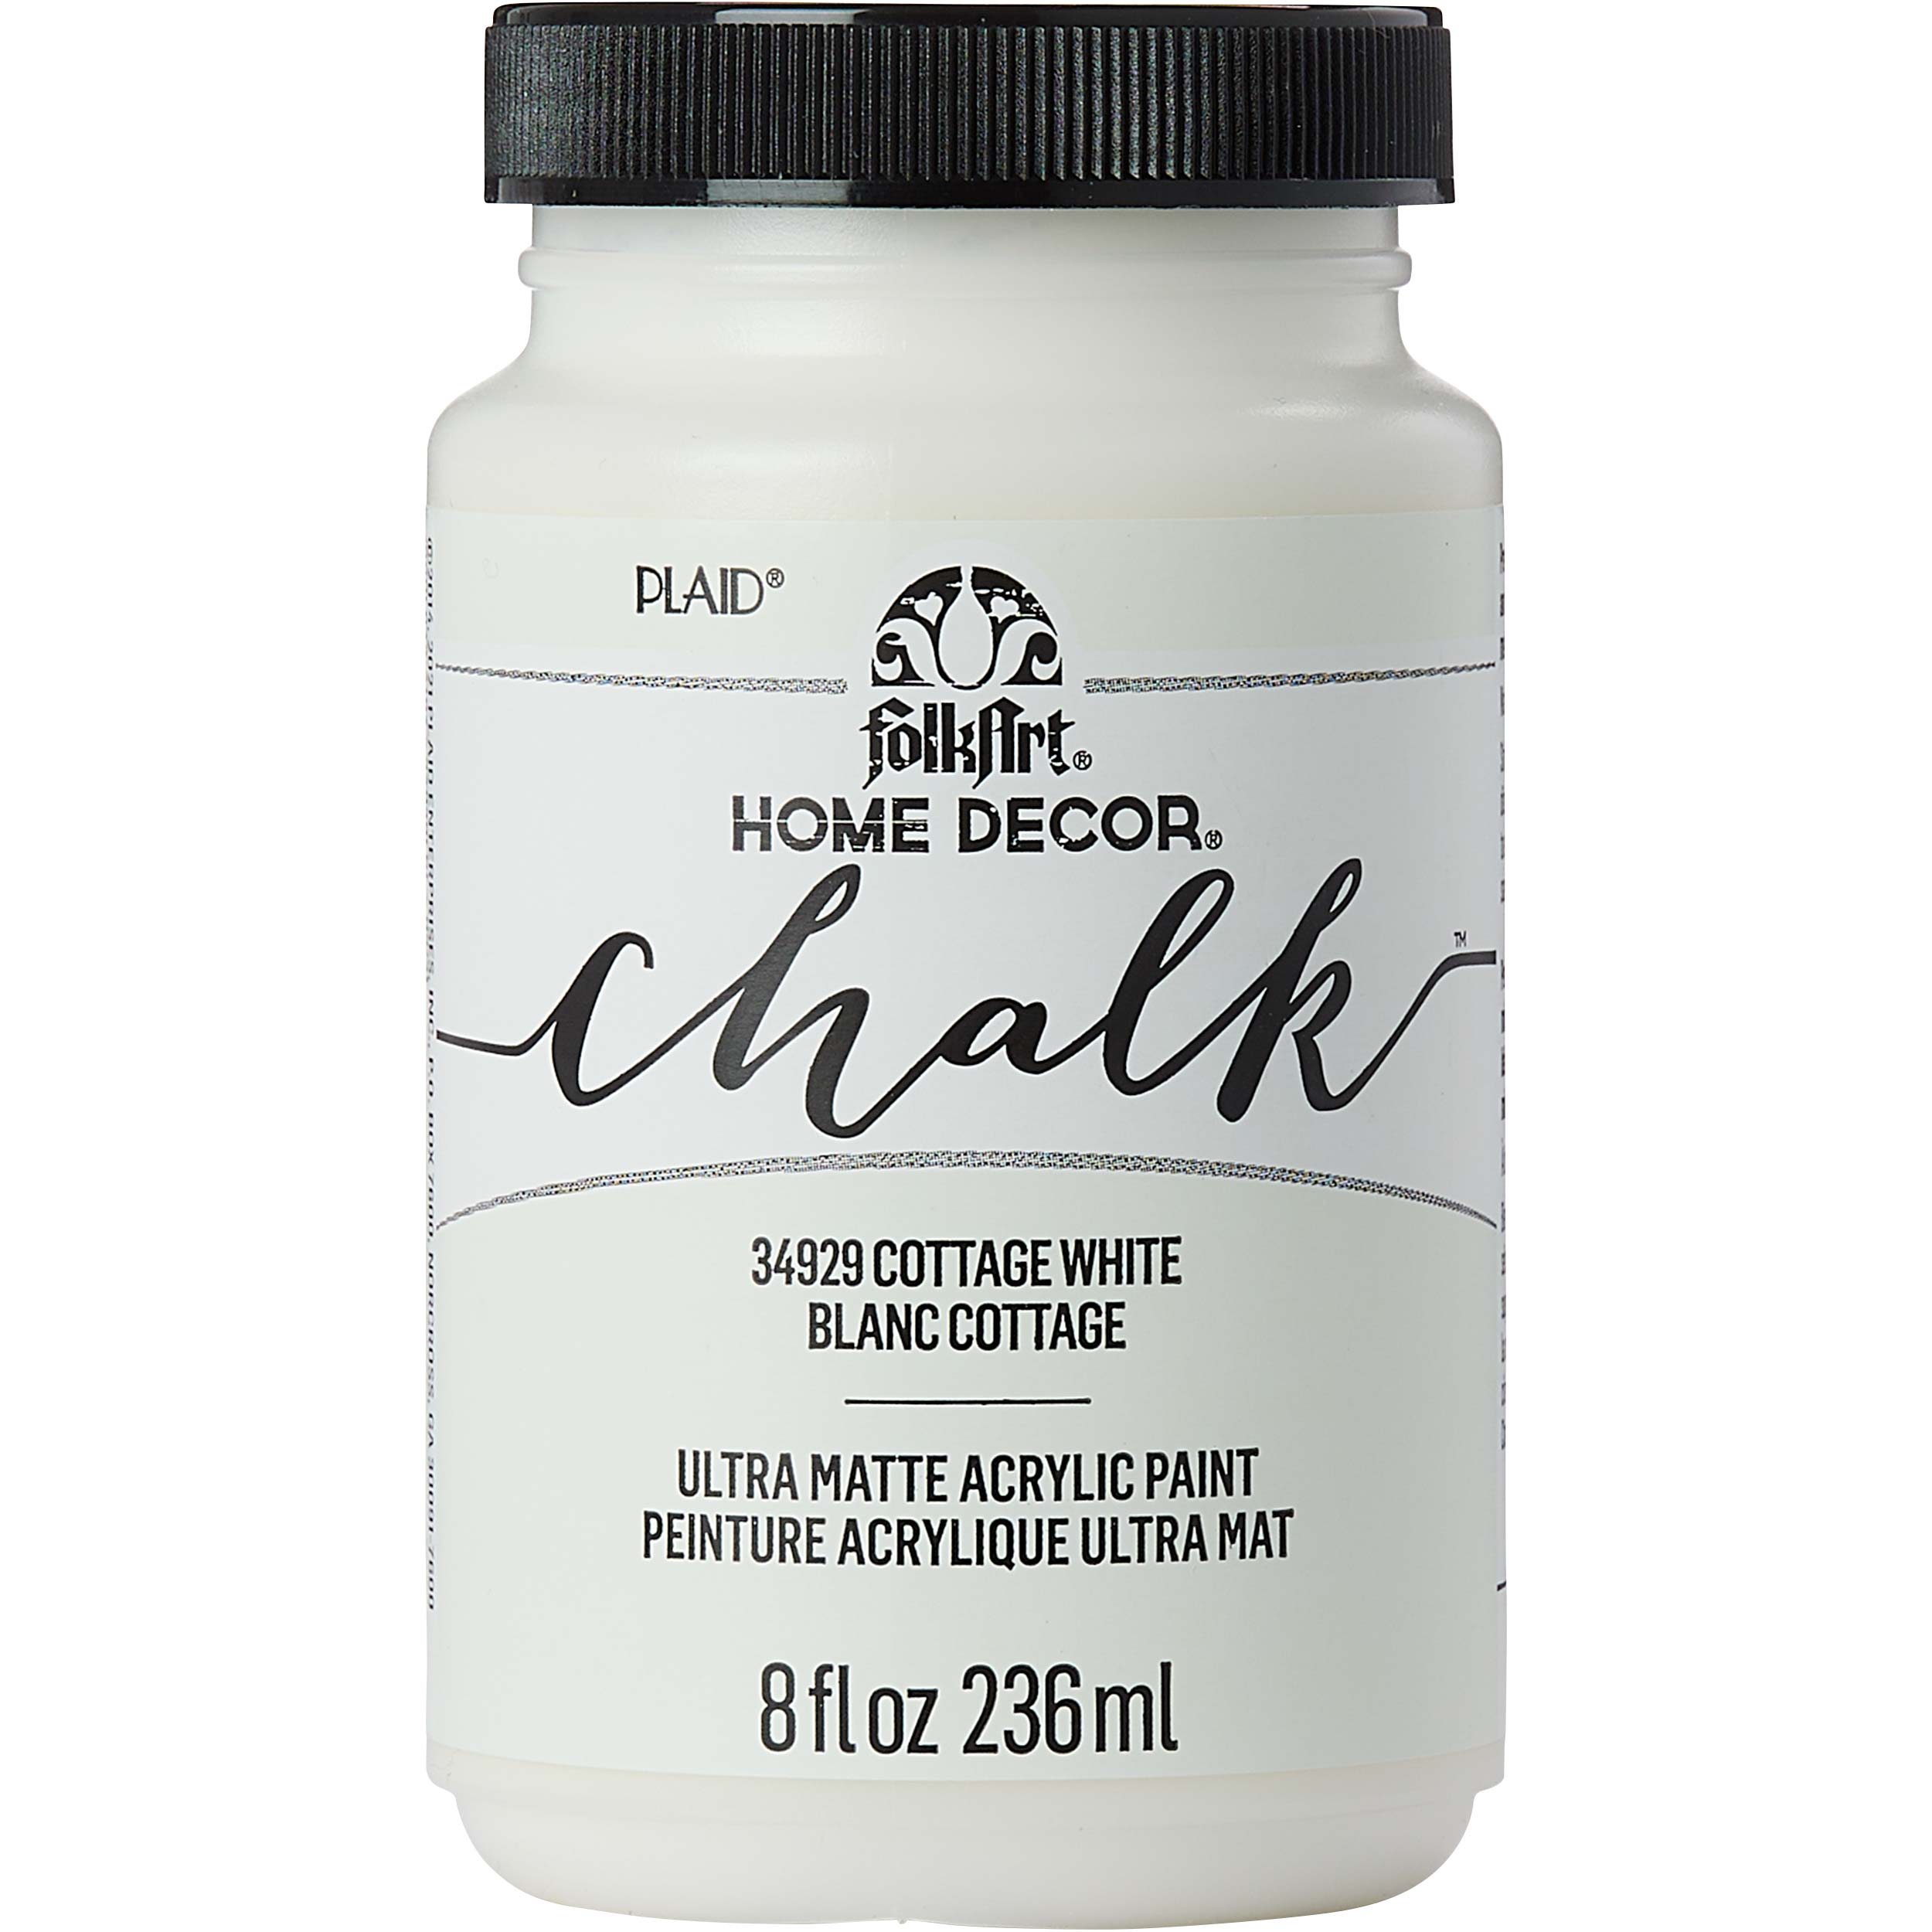 FolkArt ® Home Decor™ Chalk - Cottage White, 8 oz. - 34929